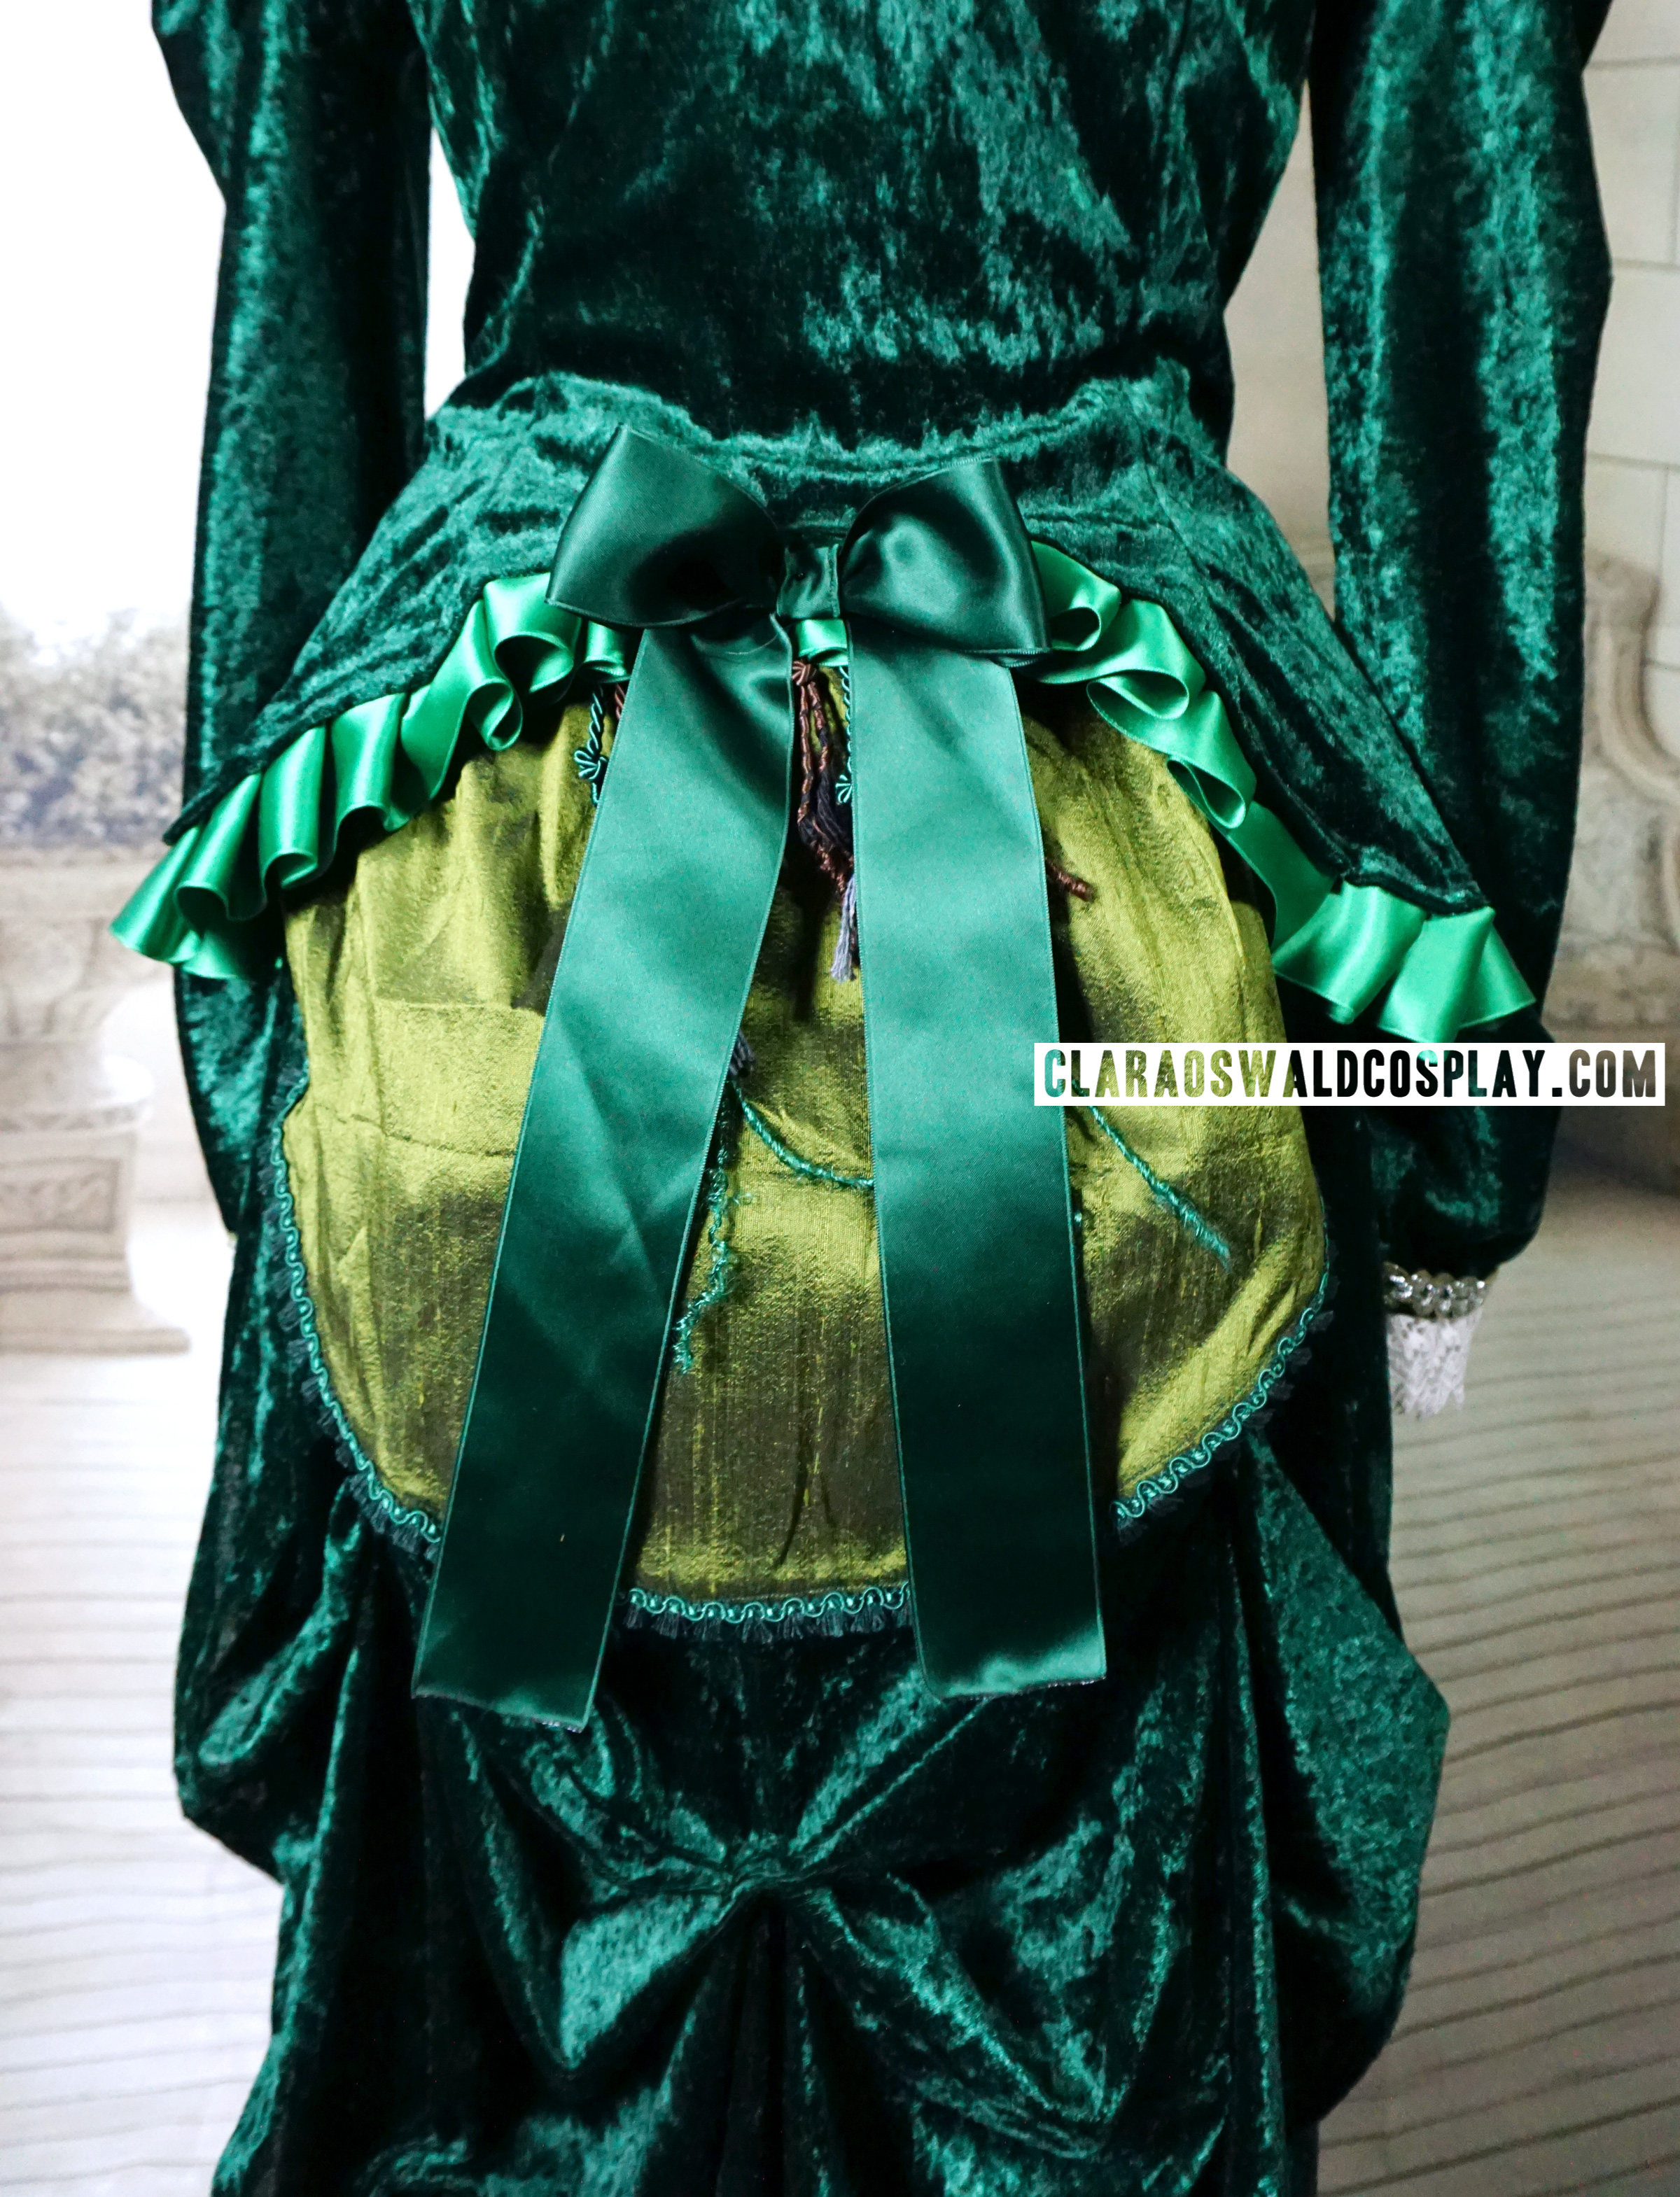 The bustle is the most striking part of Clara Oswald's Deep Breath Victorian Dress and the part I'm most proud of